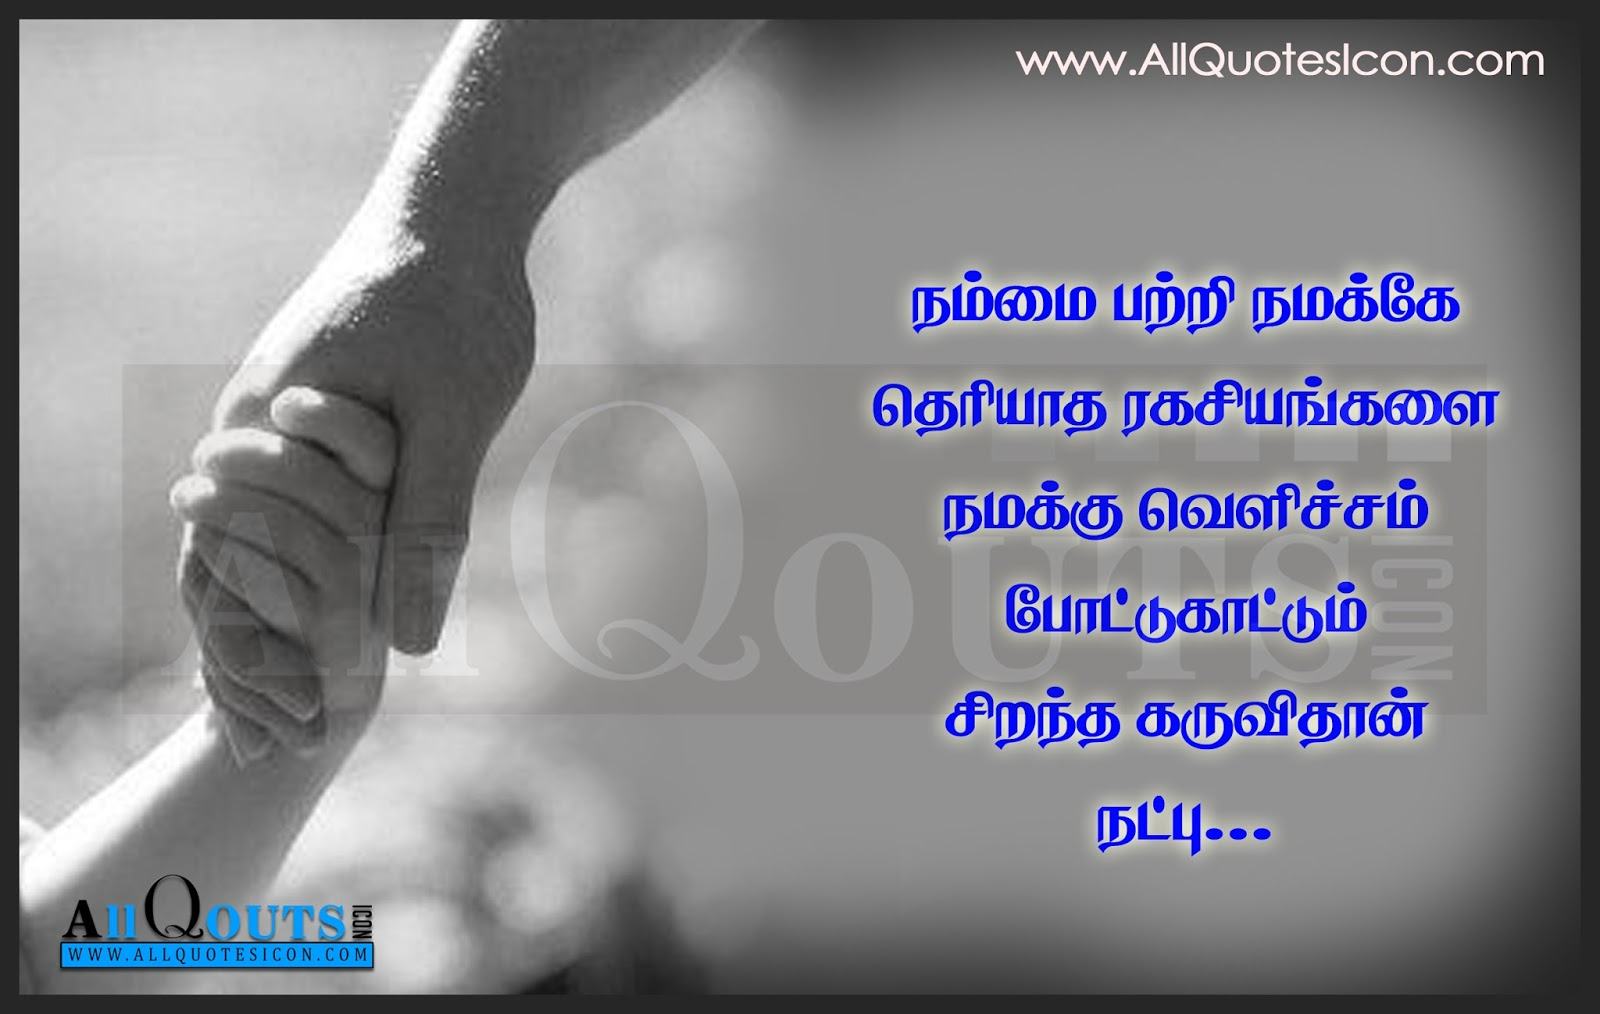 Best Friendship Thoughts And Quotes In Tamil Wwwallquotesiconcom